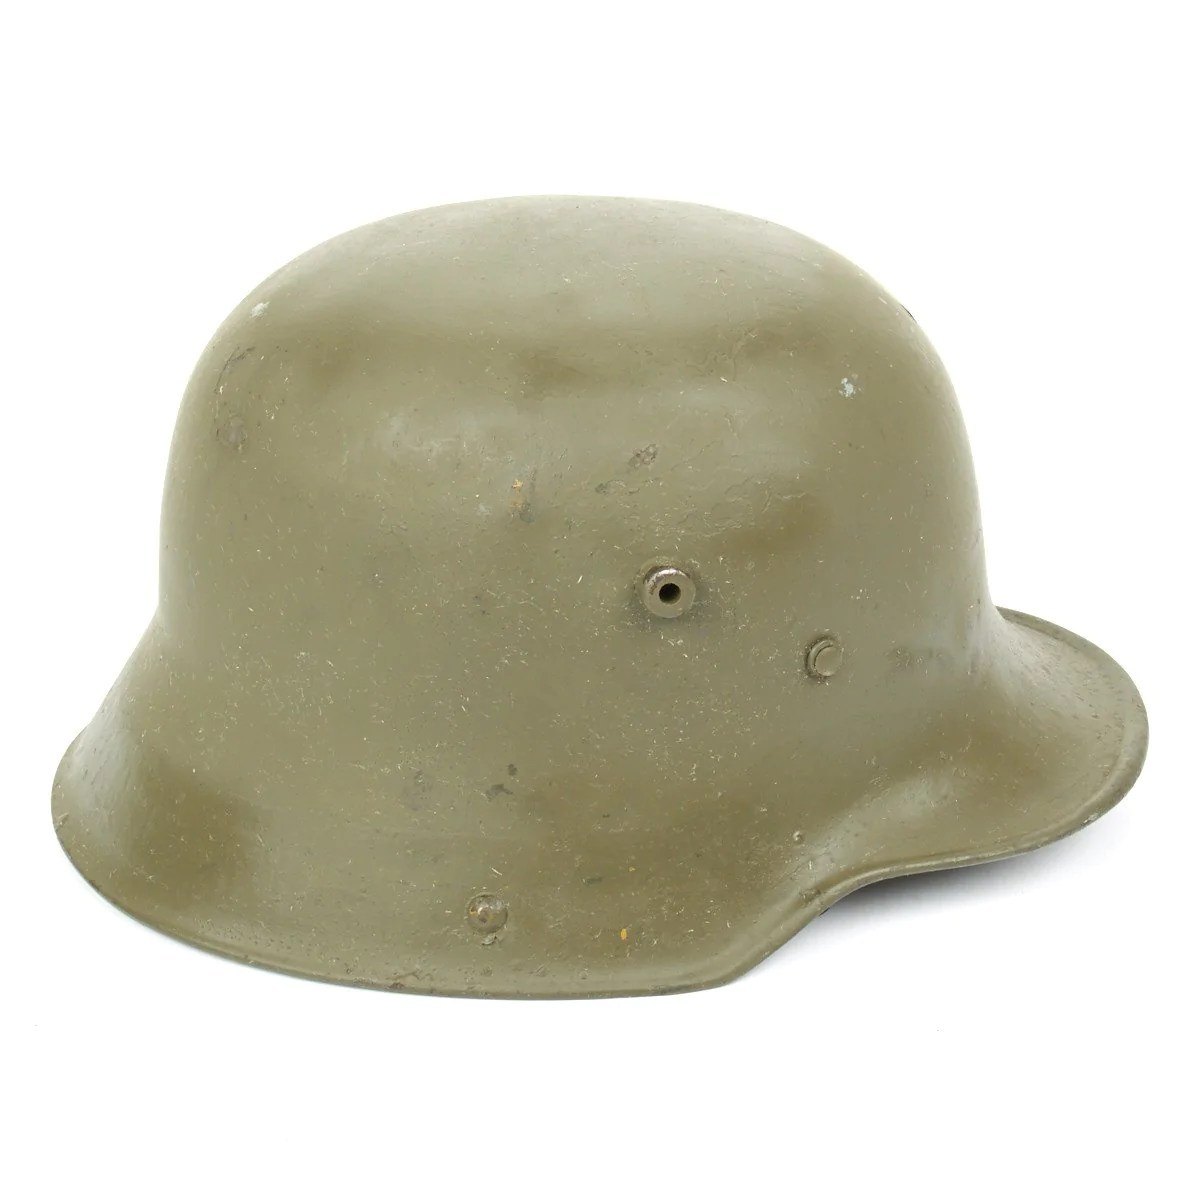 Strahlhelm Original Imperial German Wwi M16 Stahlhelm Helmet Shell Size 66